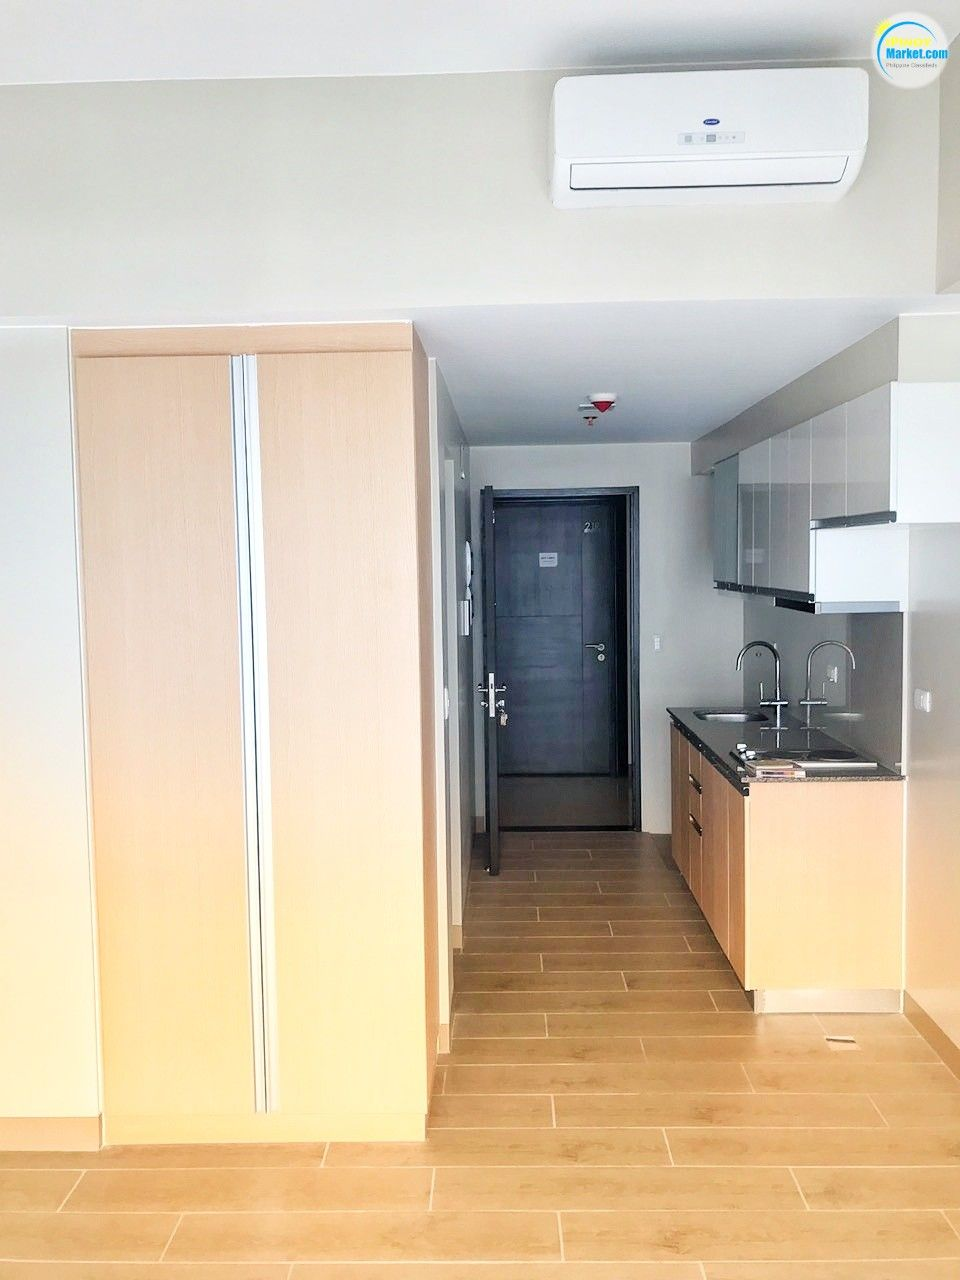 Rent To Own Studio Condo In Eastwood City Philippines Rent To